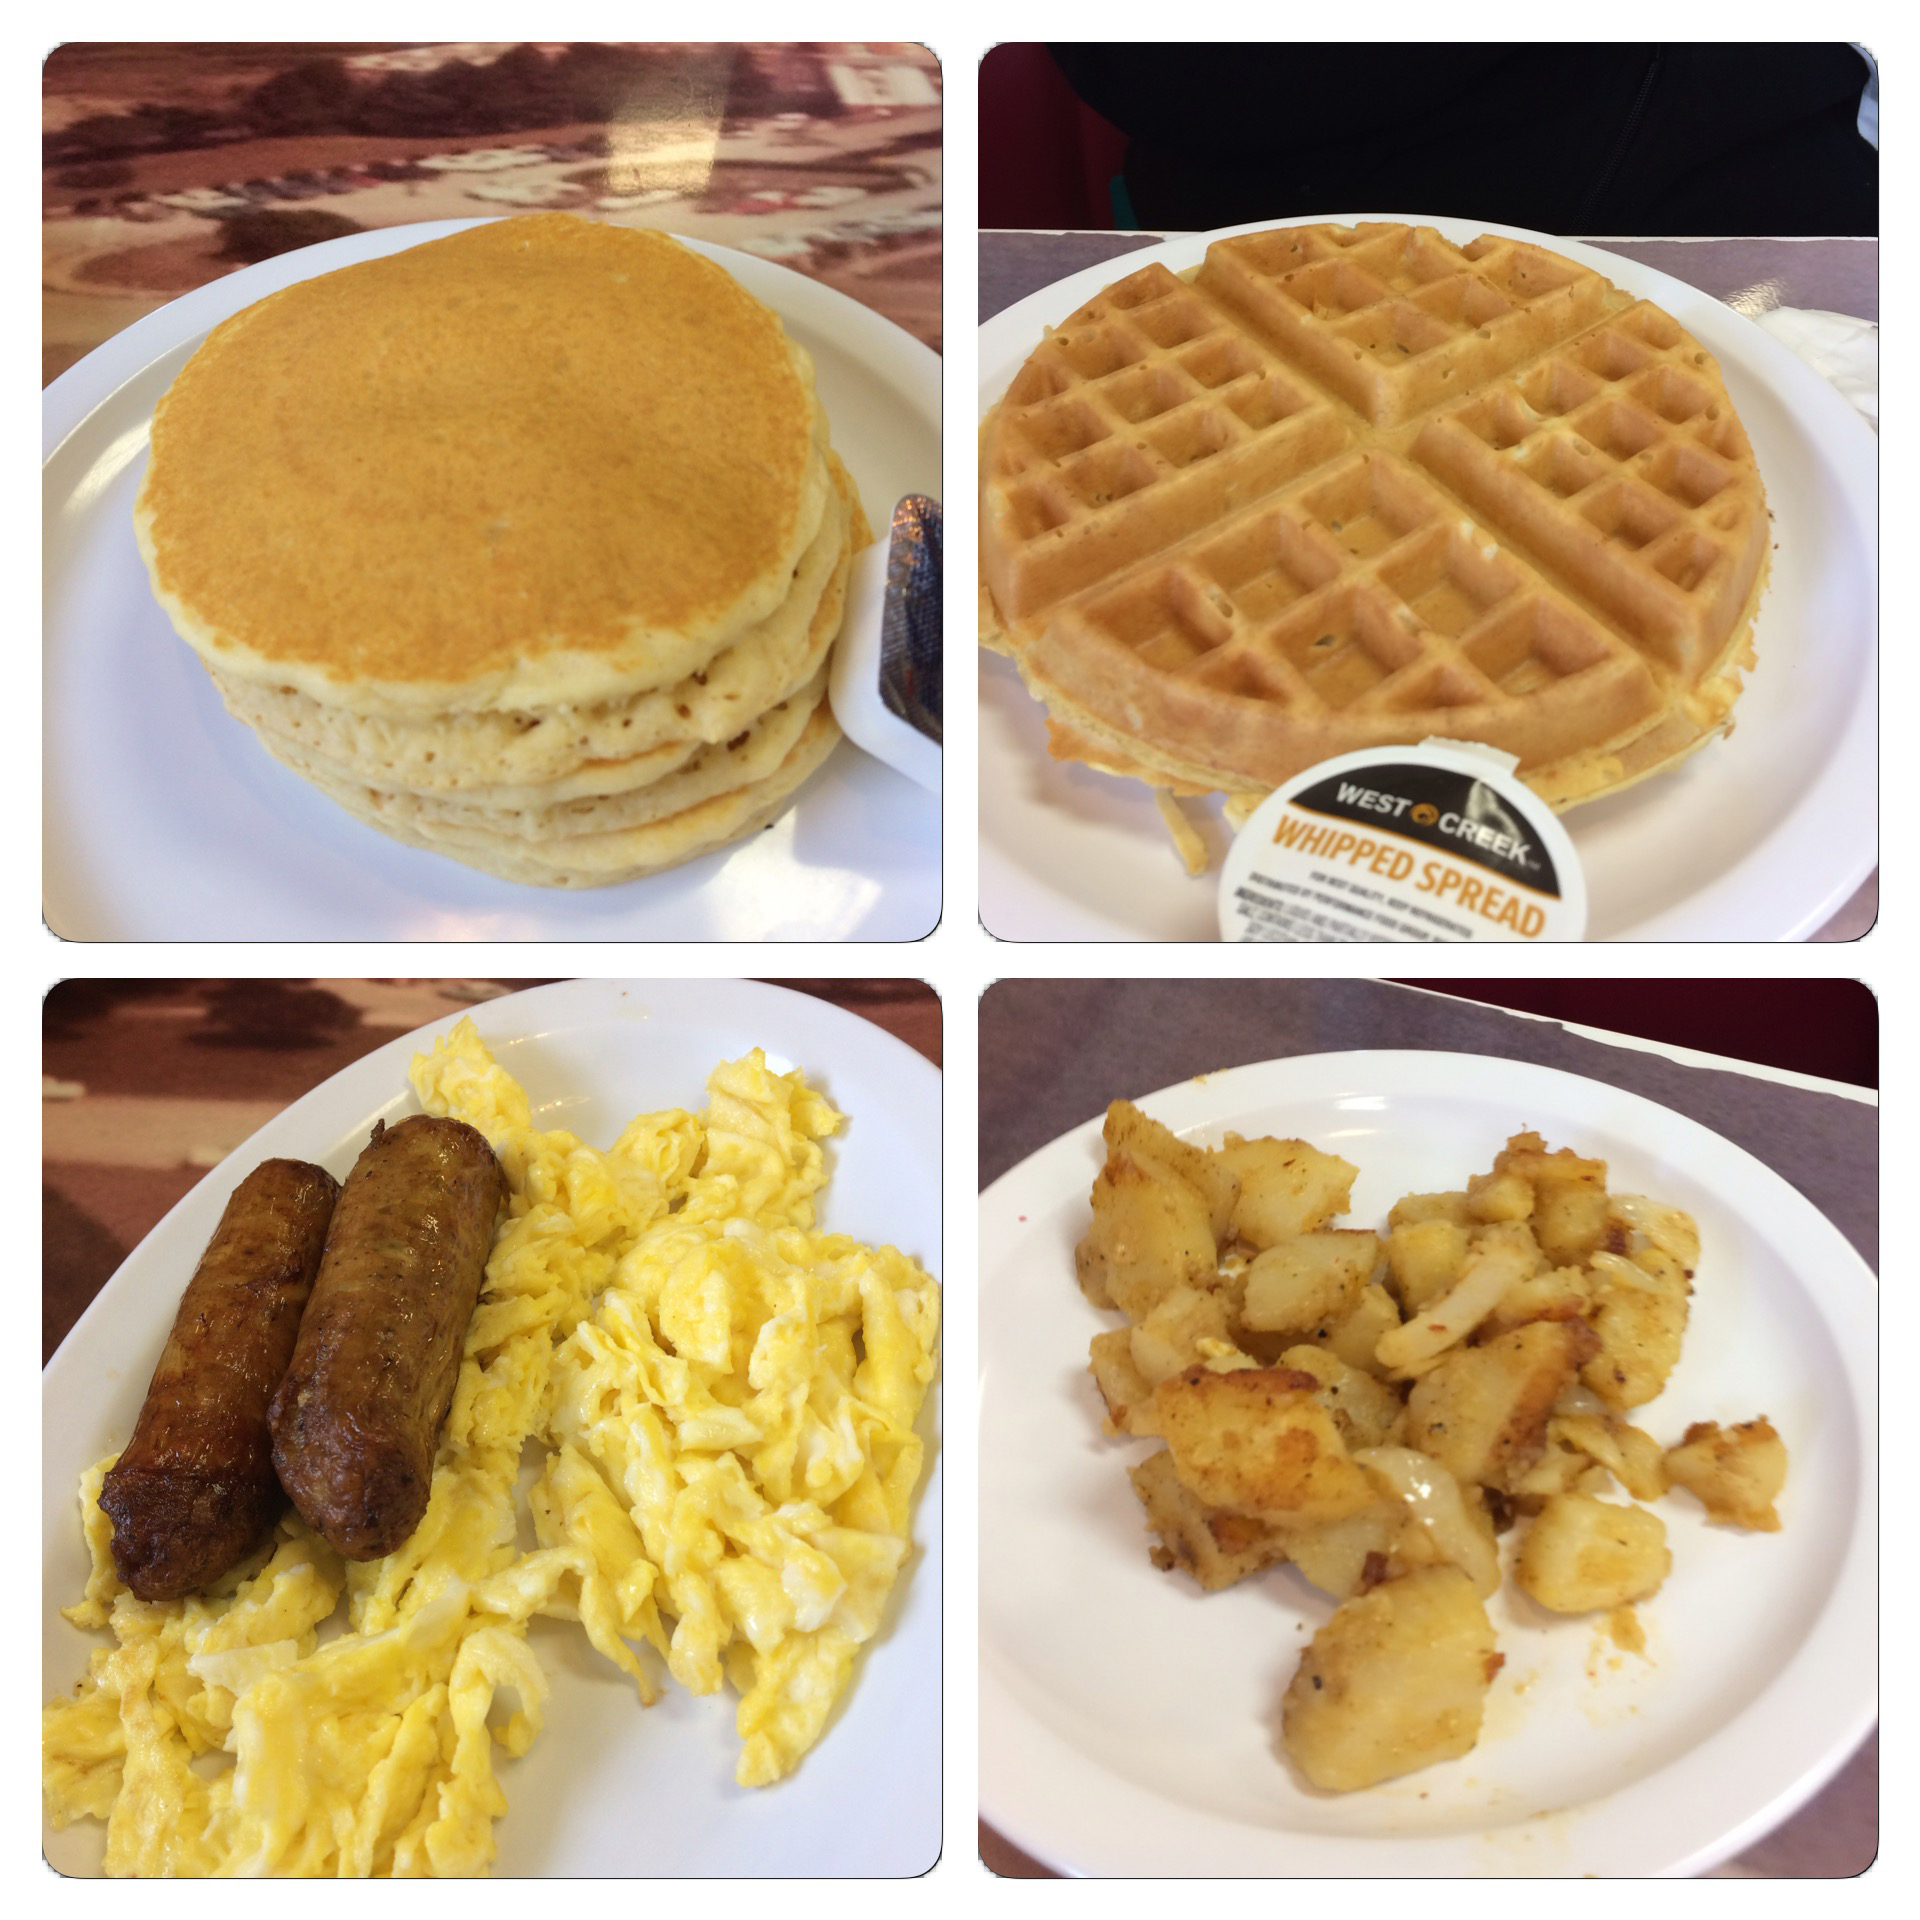 A close up look at our food that we enjoyed at the Southern House of Pancakes in Myrtle Beach.